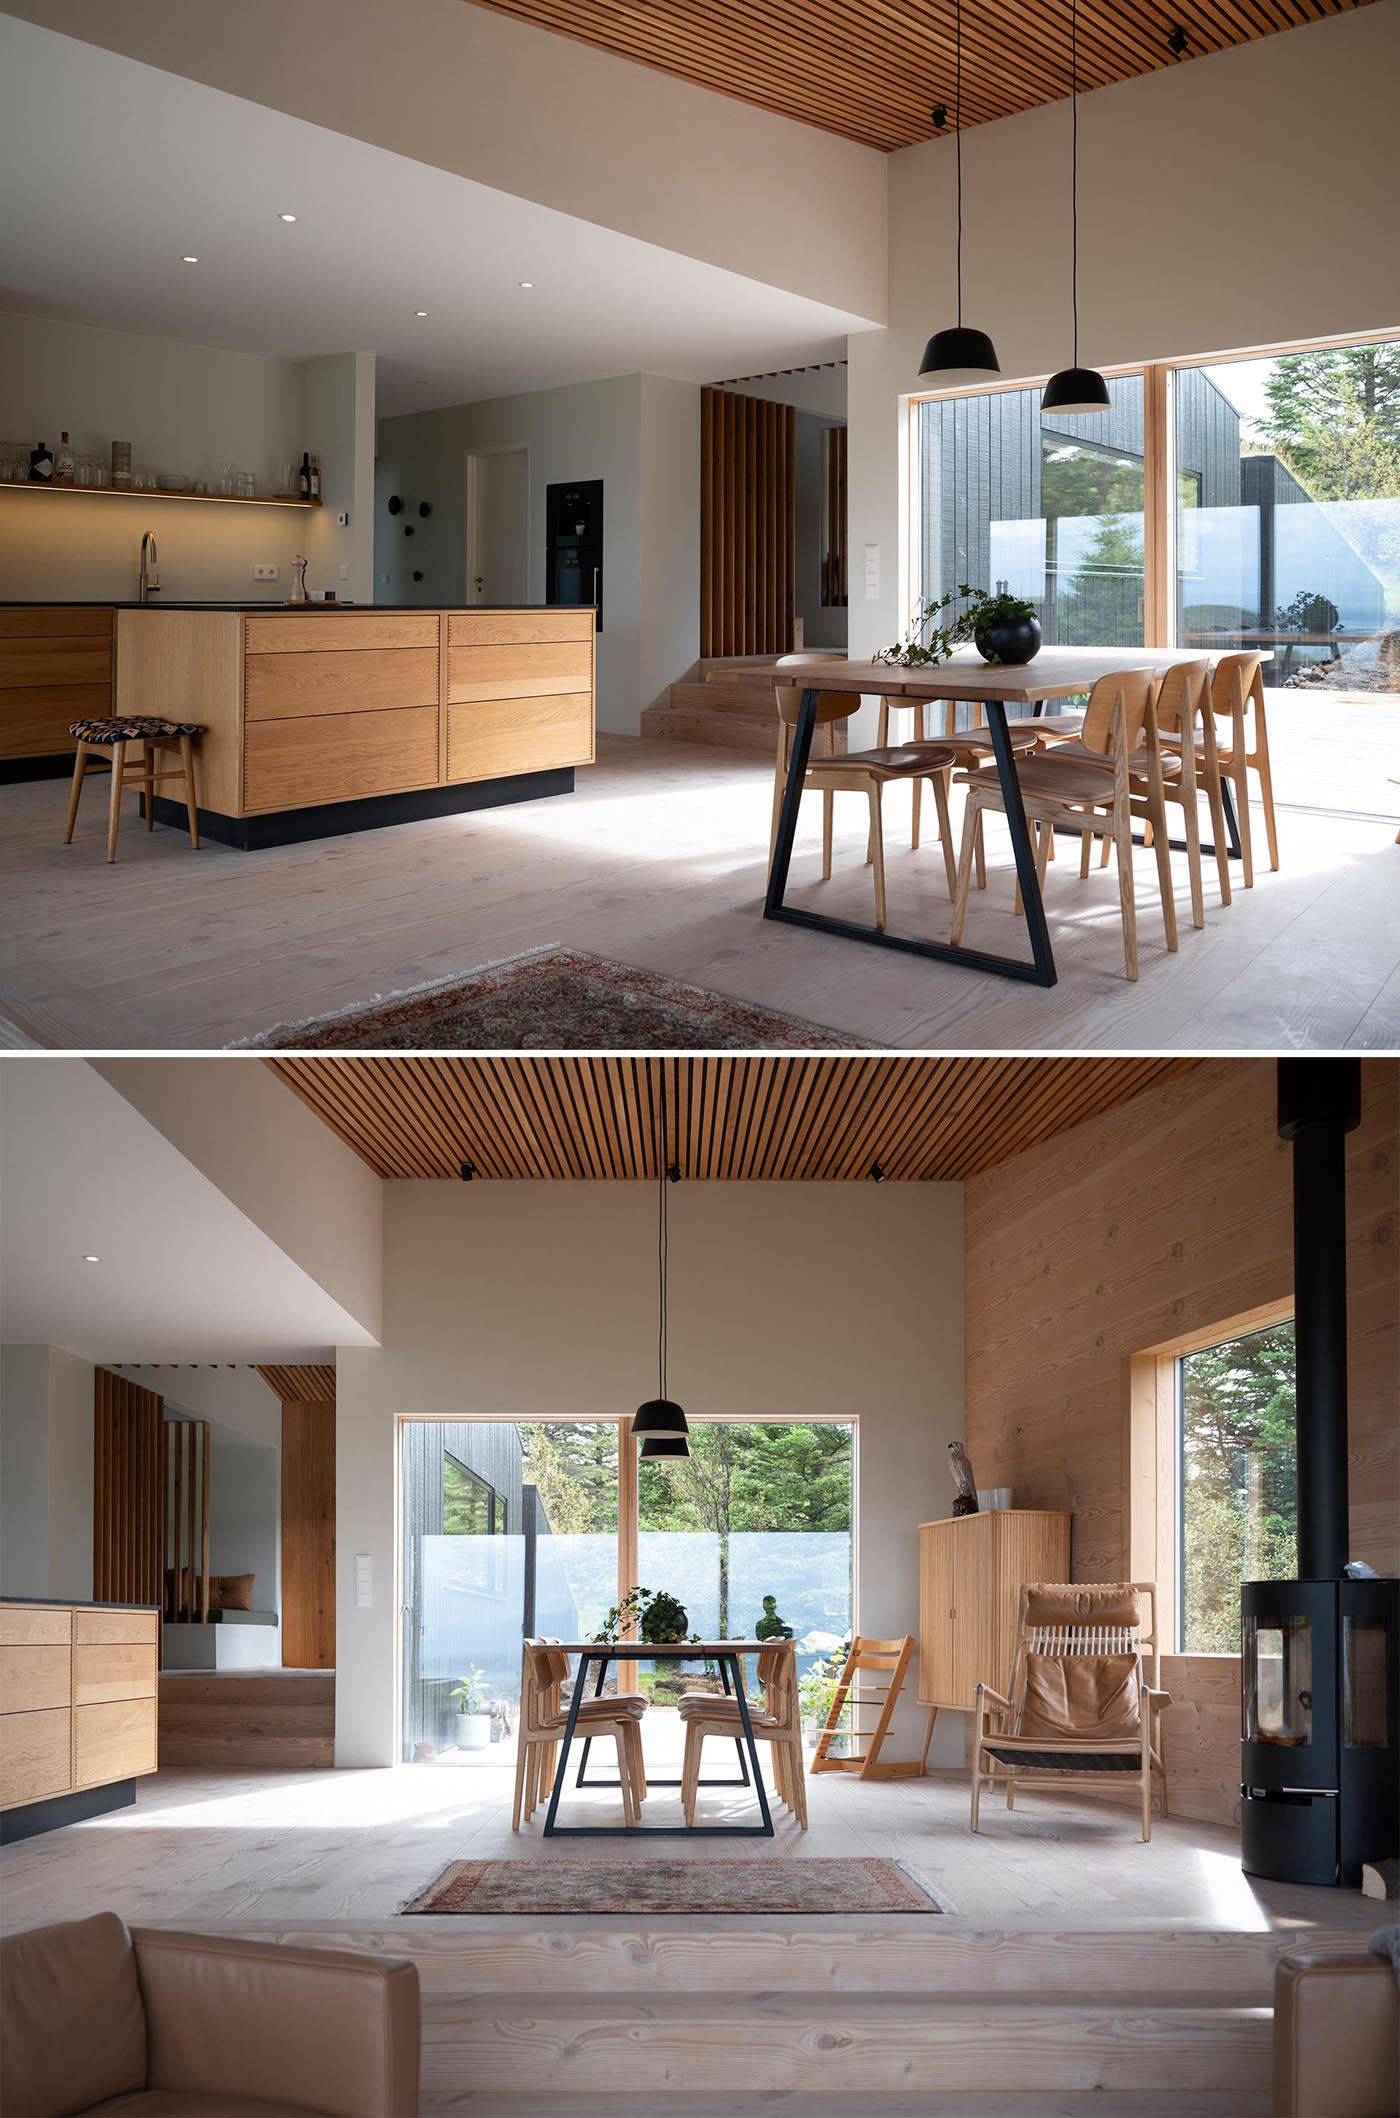 Inside this modern home, there's an open plan kitchen and dining room. Both have black accents, however the dining room also includes a wood slat ceiling and a black fireplace.